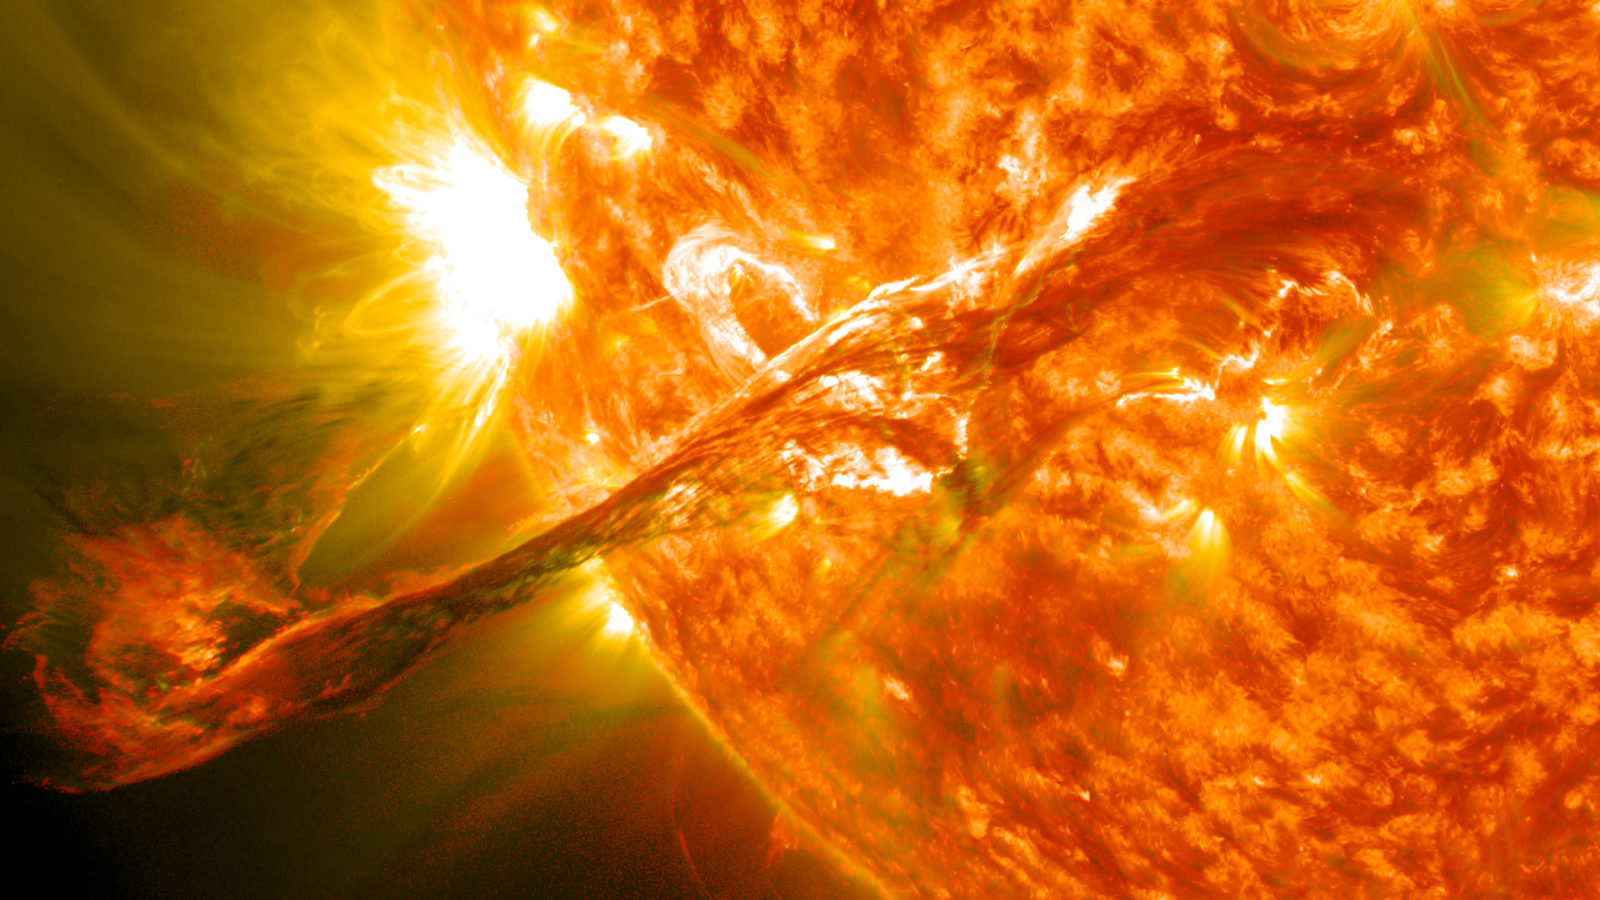 Space Weather – A HOLE IN THE SUN'S ATMOSPHERE